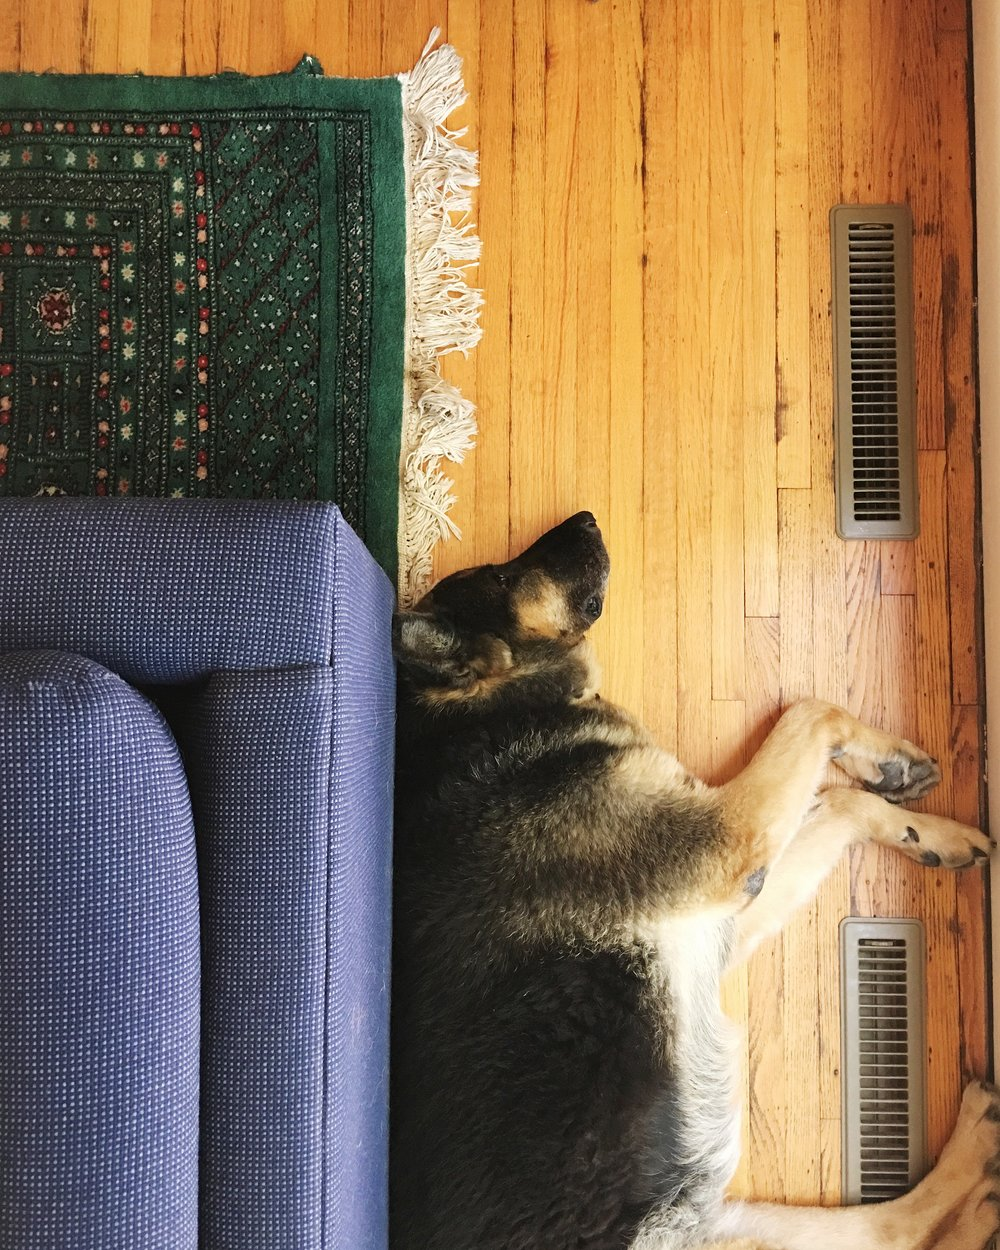 Our German Shepherd Sagan snoozing nearby